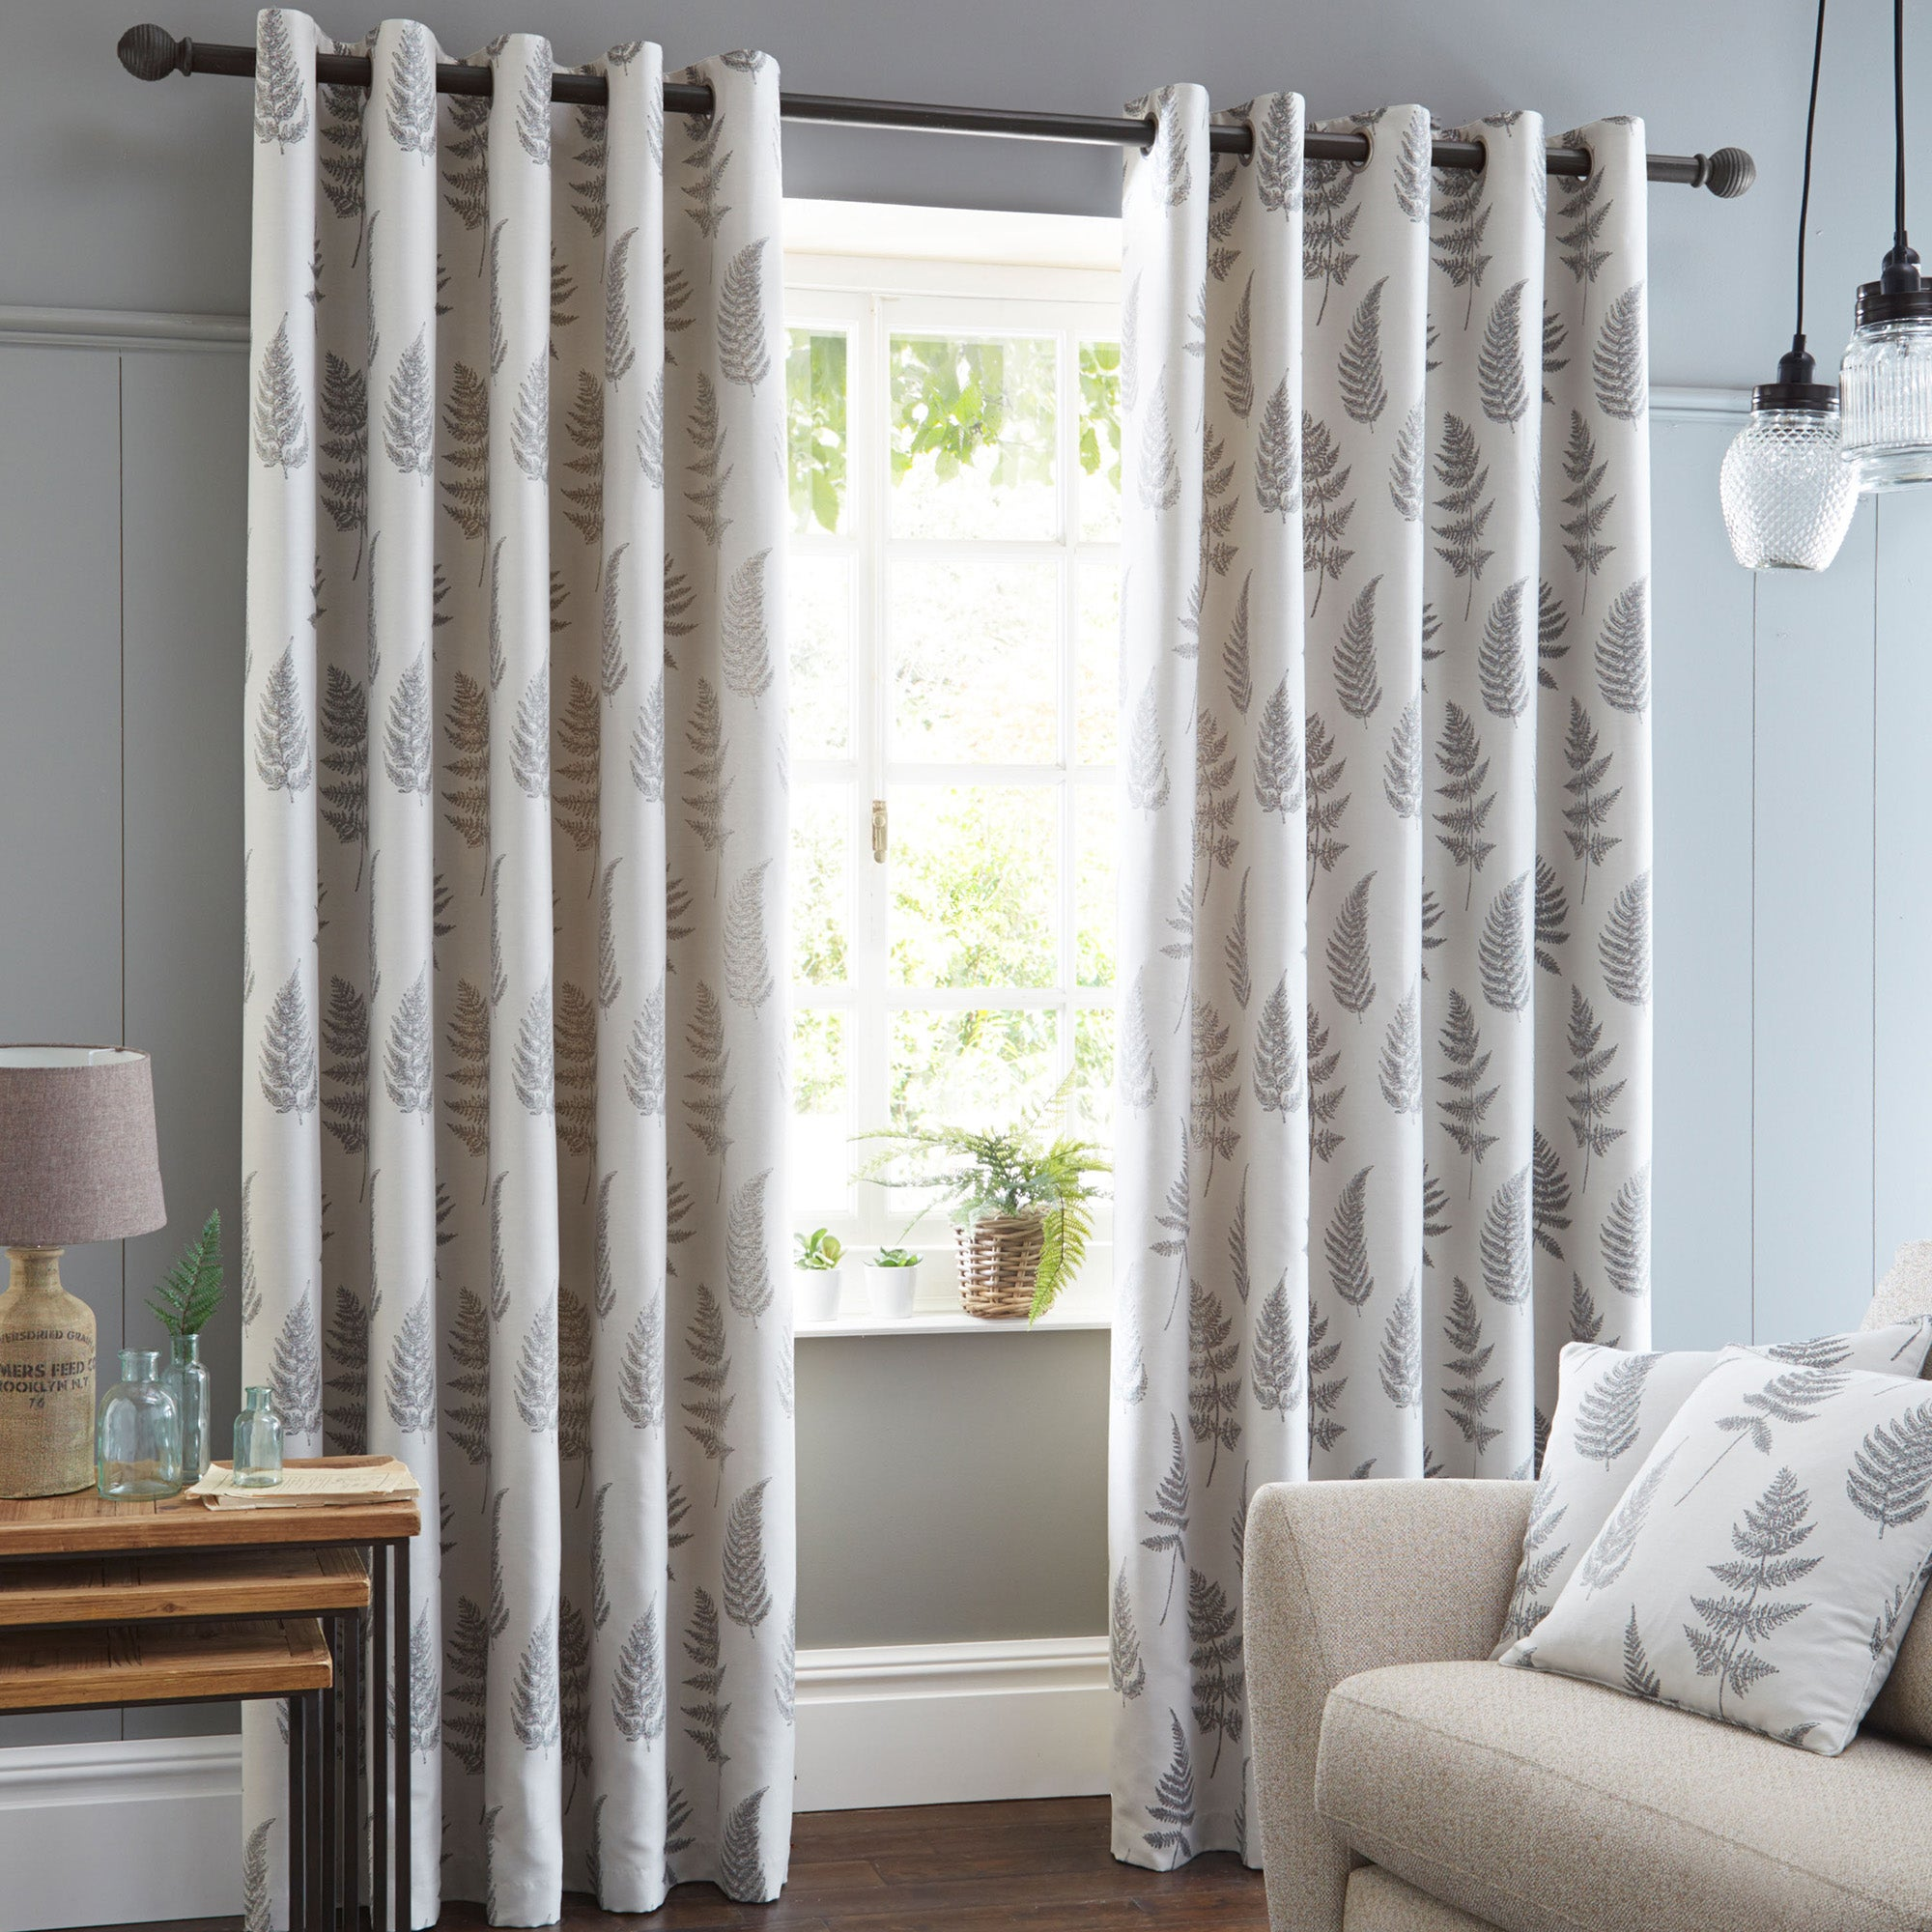 Teal and grey curtains